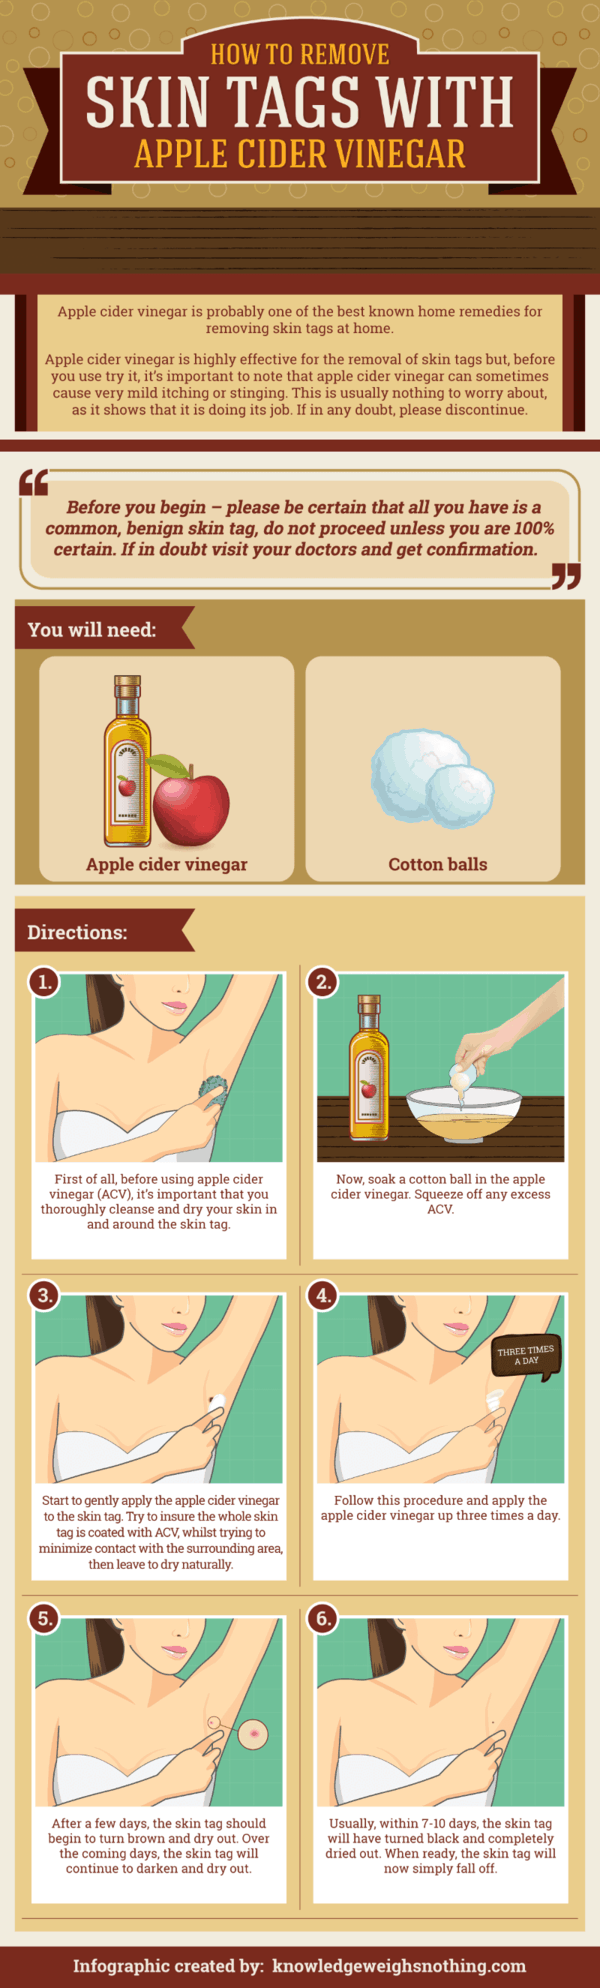 How to remove skin tags infographic